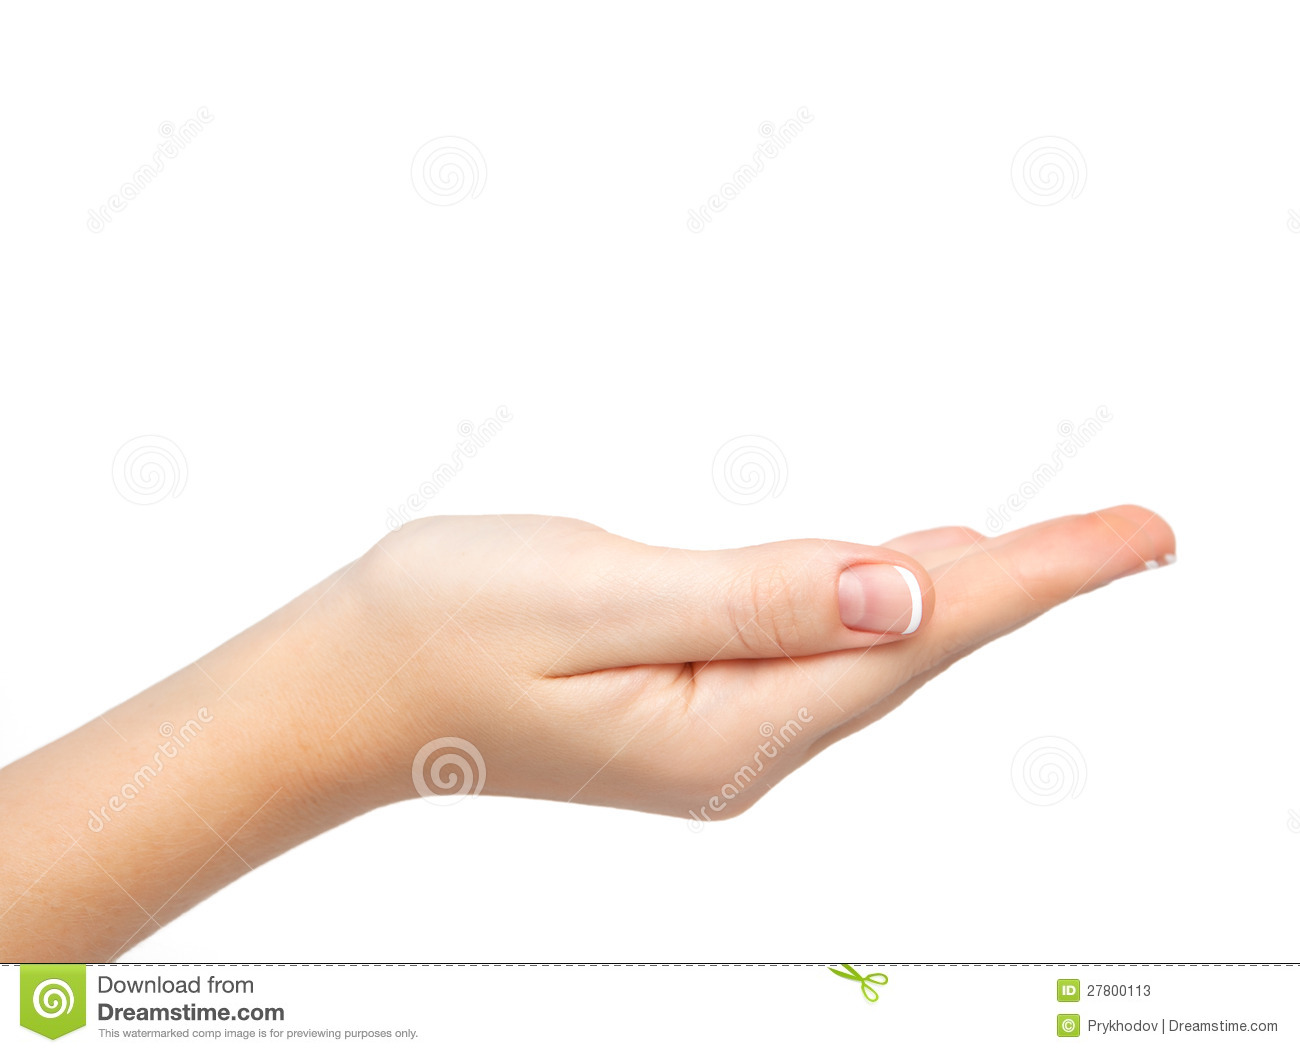 Female Hand Palm Held Subject Stock Photos - Image: 27800113